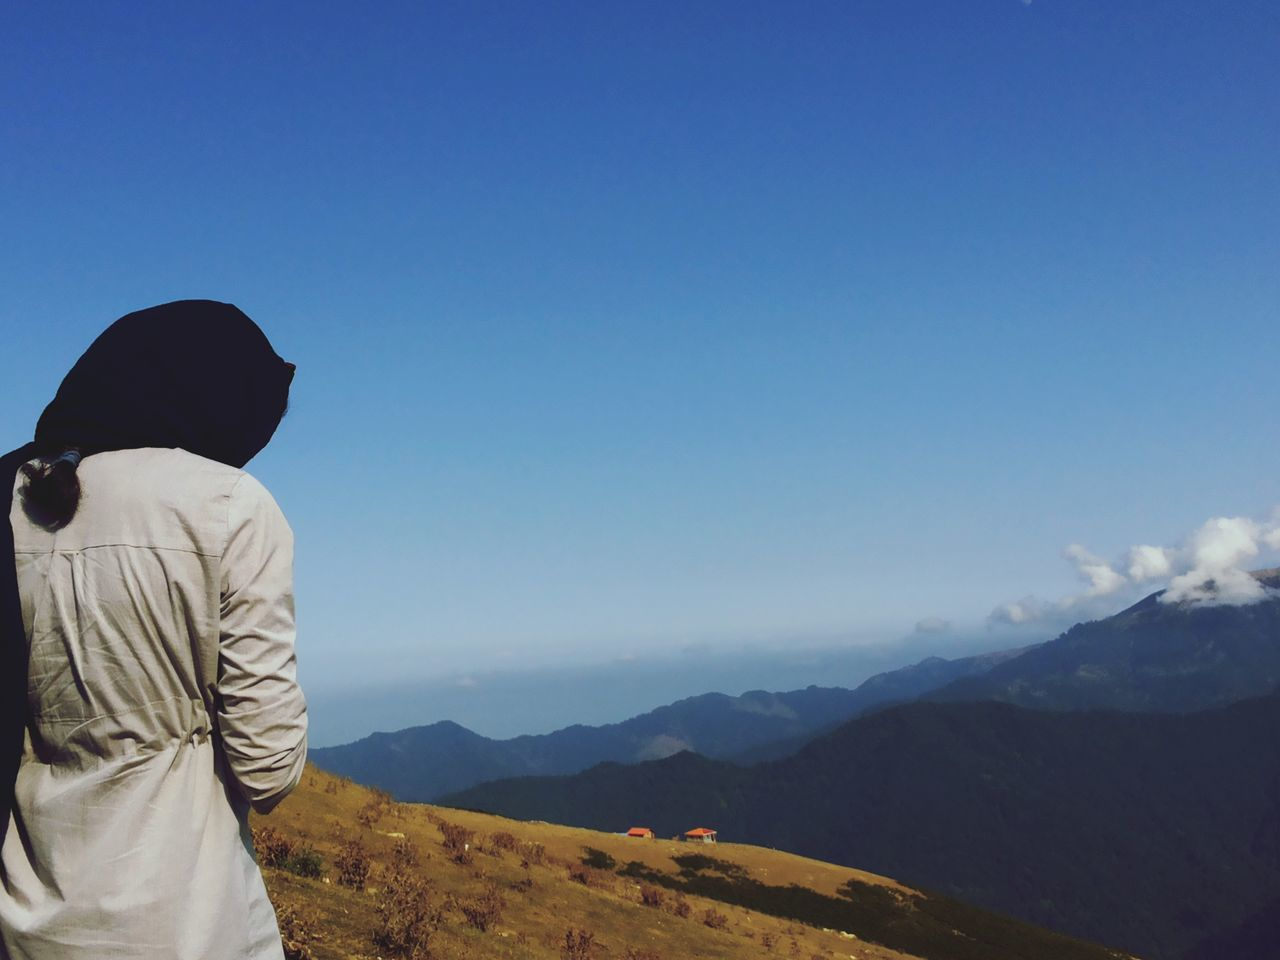 mountain, sky, real people, leisure activity, rear view, one person, lifestyles, beauty in nature, scenics - nature, tranquil scene, mountain range, non-urban scene, nature, tranquility, copy space, men, blue, environment, day, outdoors, looking at view, hood - clothing